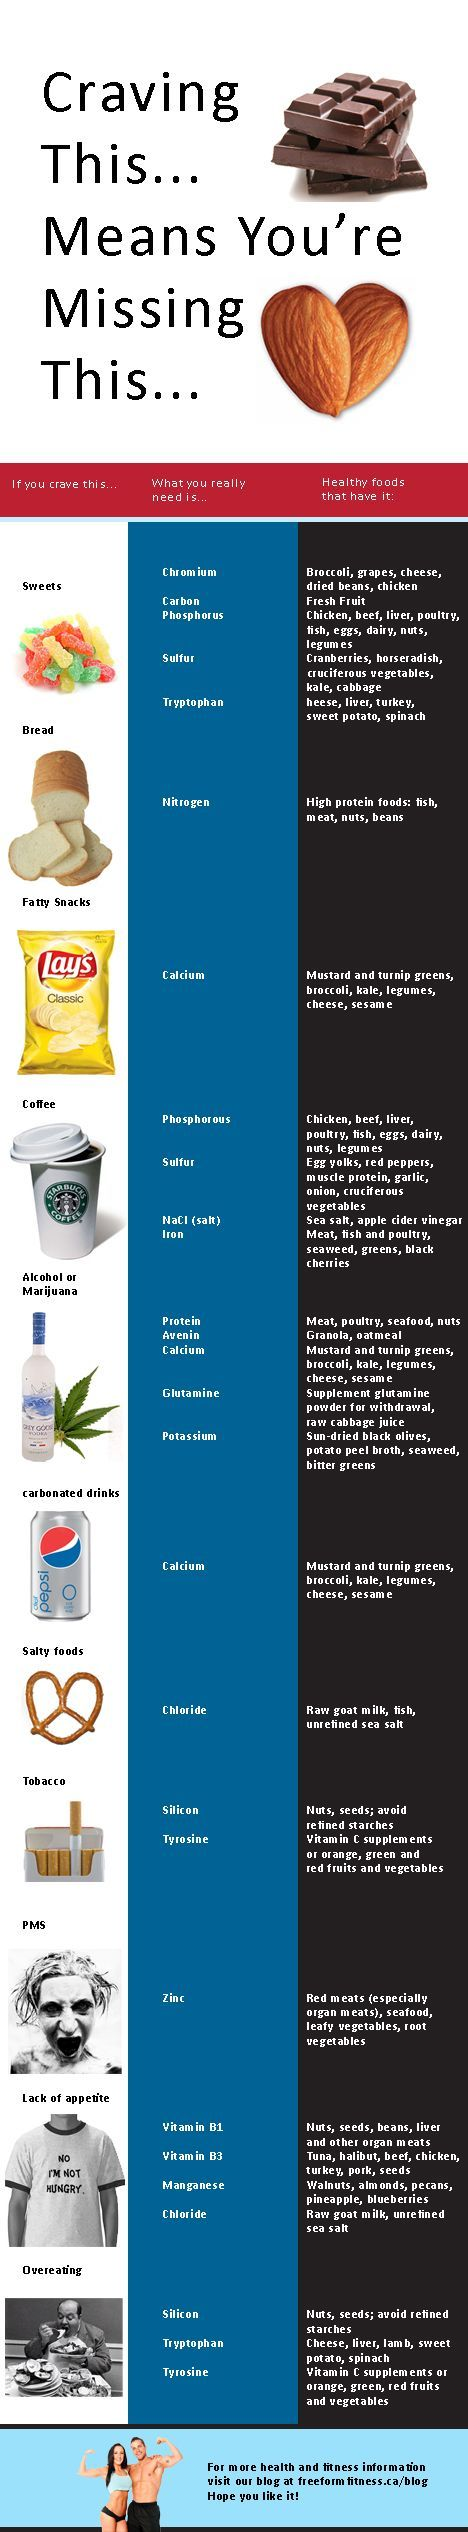 The Real Meaning of Inner Food Cravings - Infographic